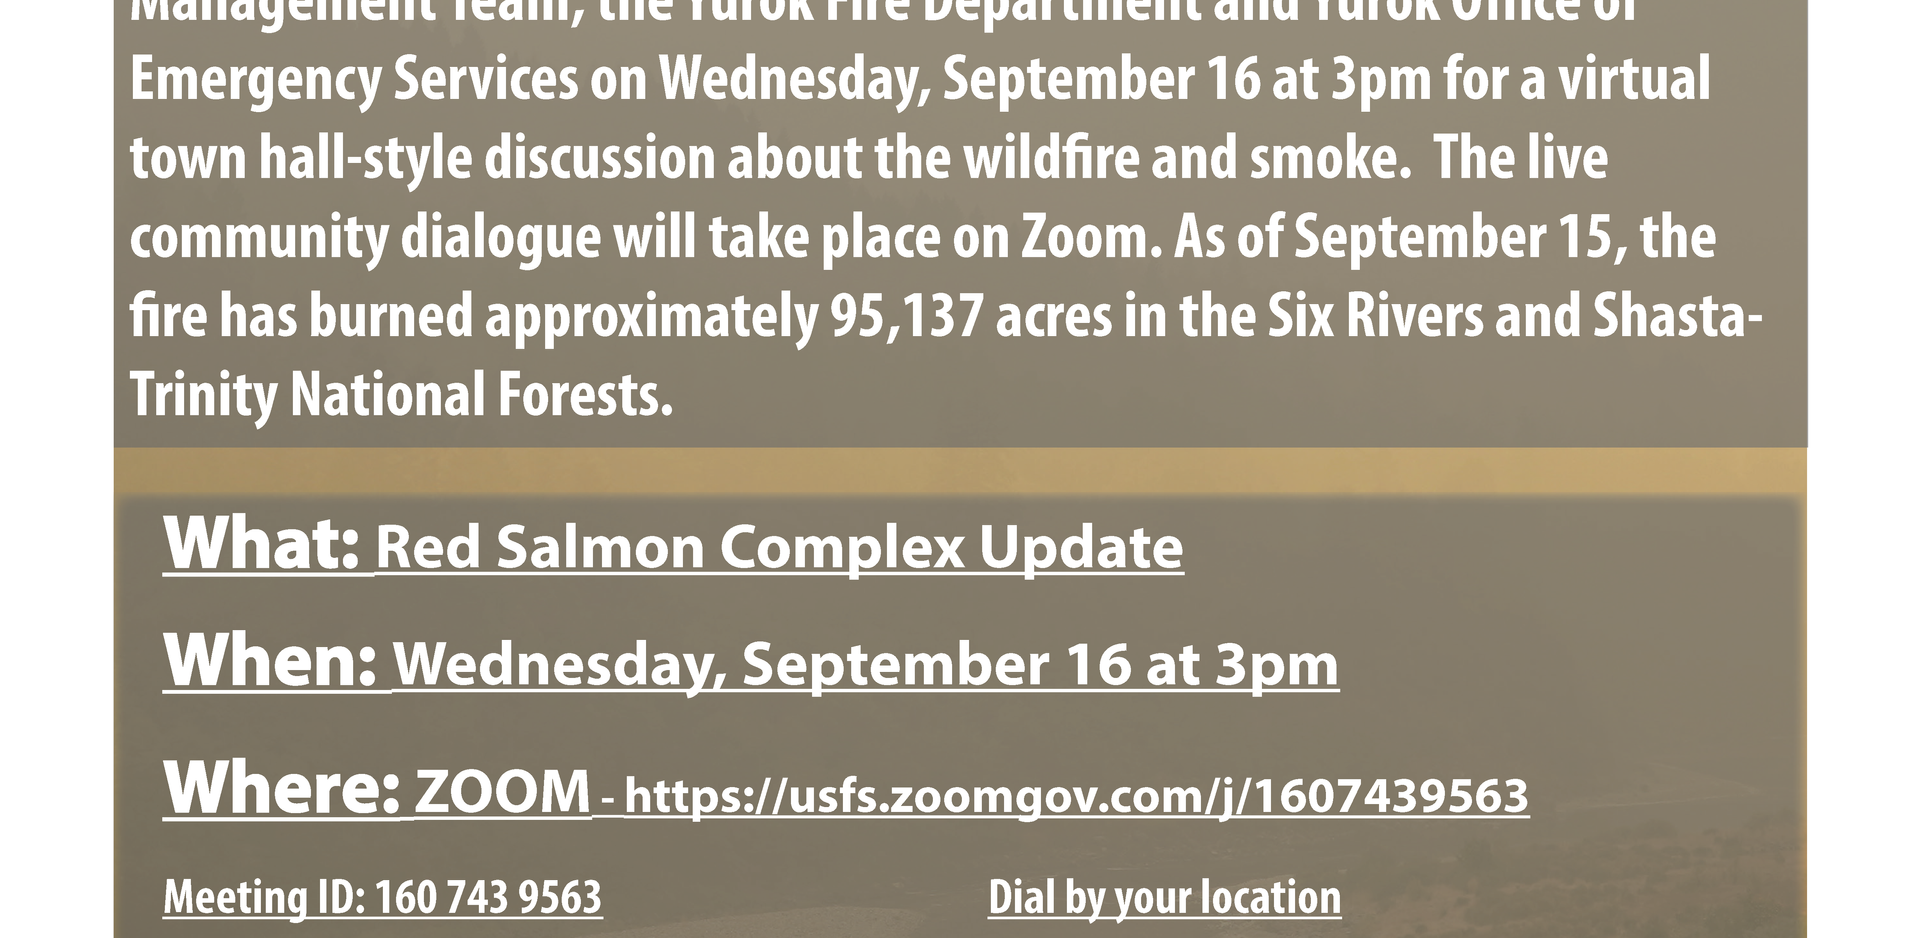 Red Salmon Complex Update - Town Hall